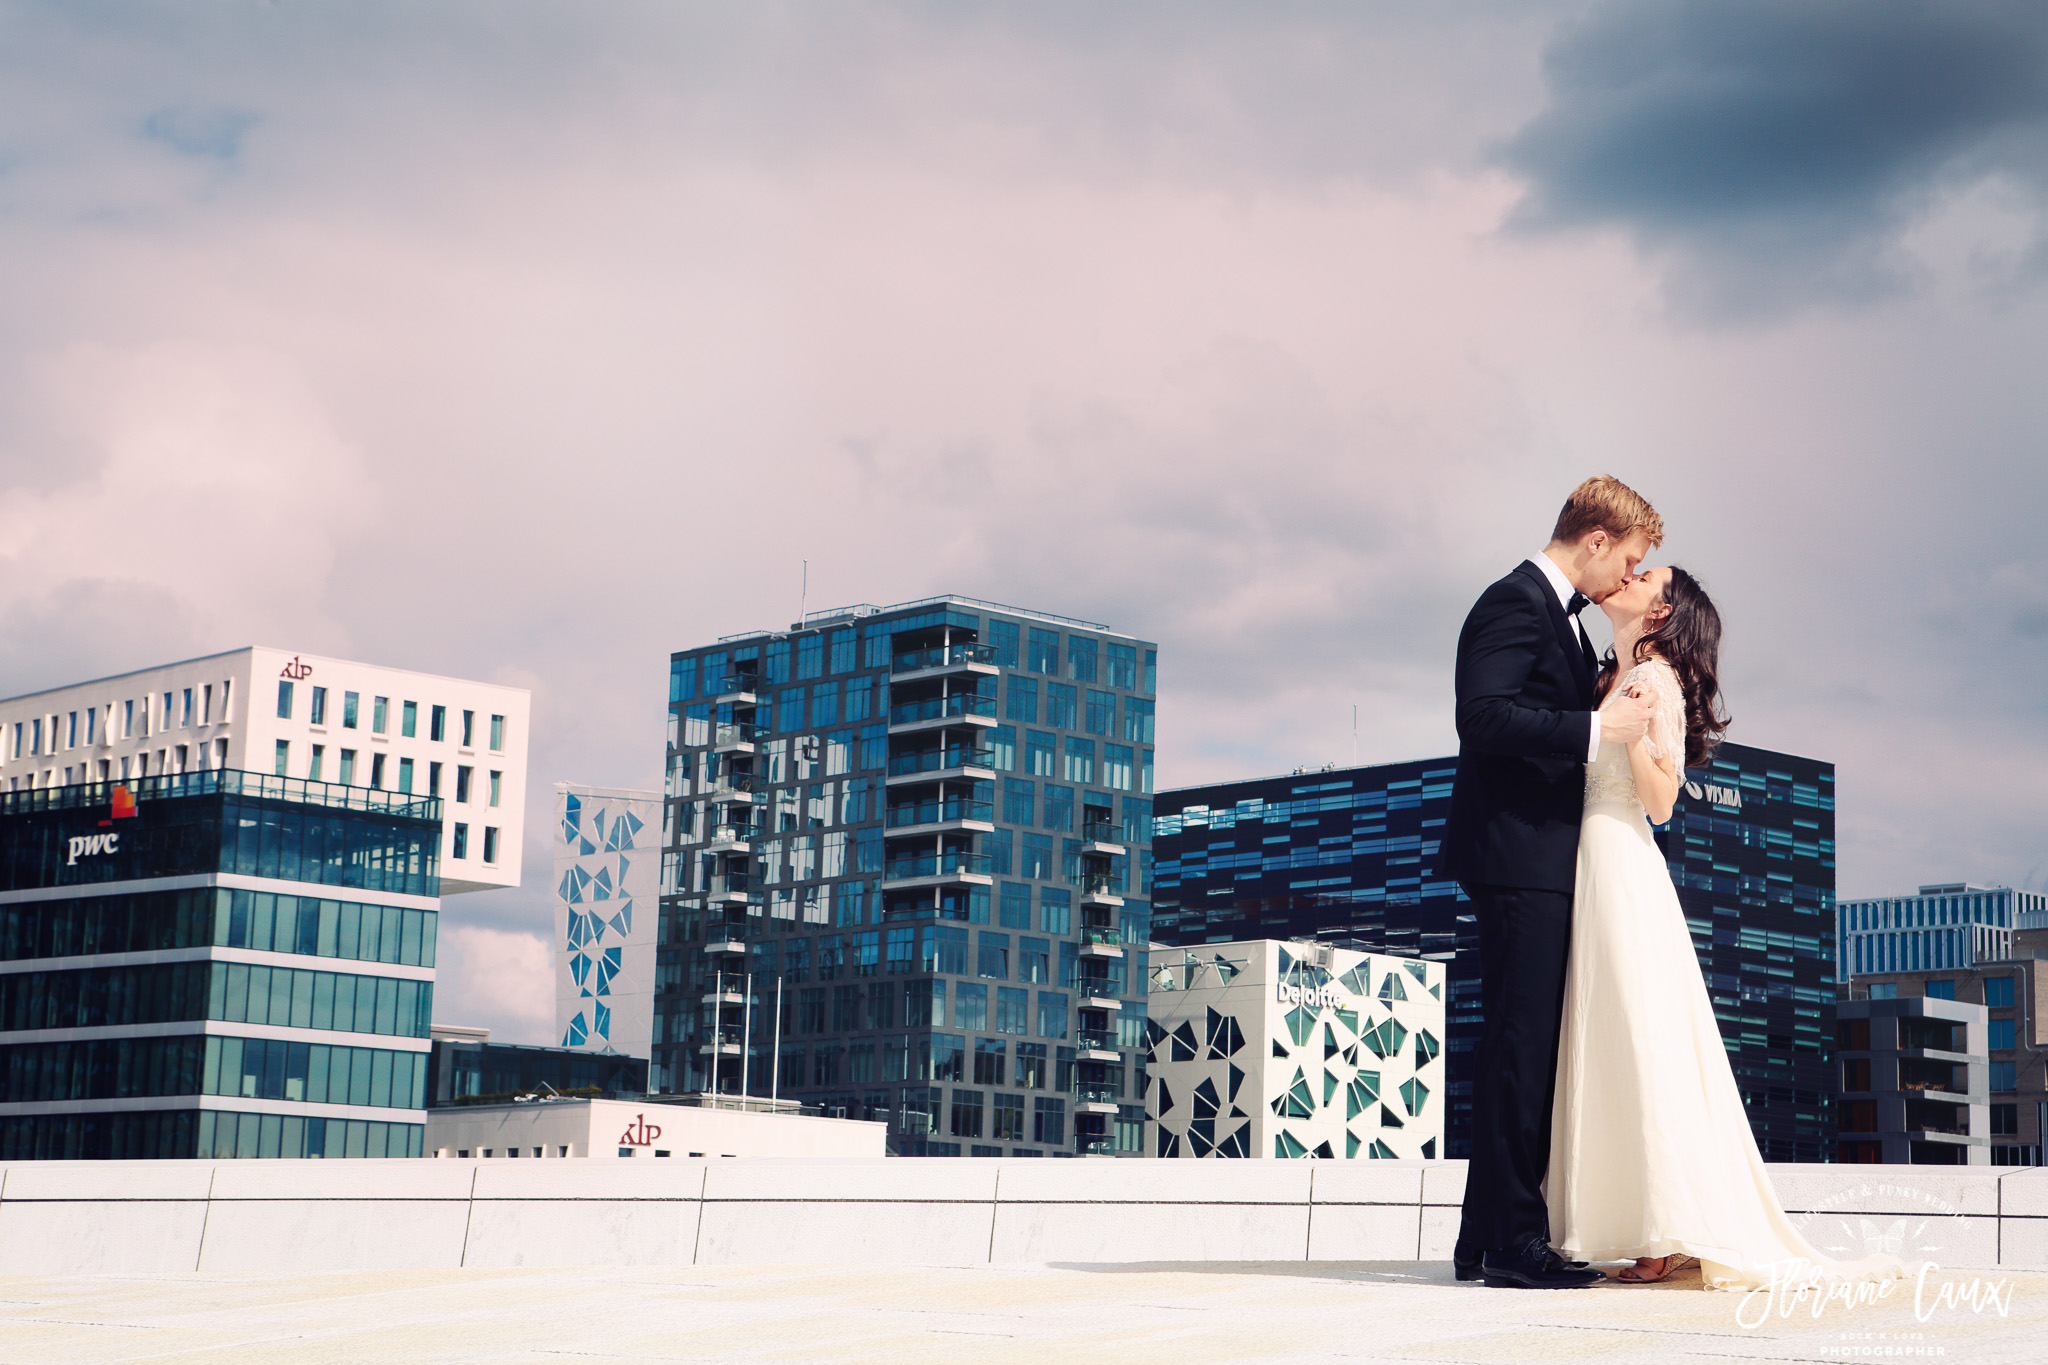 destination-wedding-photographer-oslo-norway-floriane-caux-70